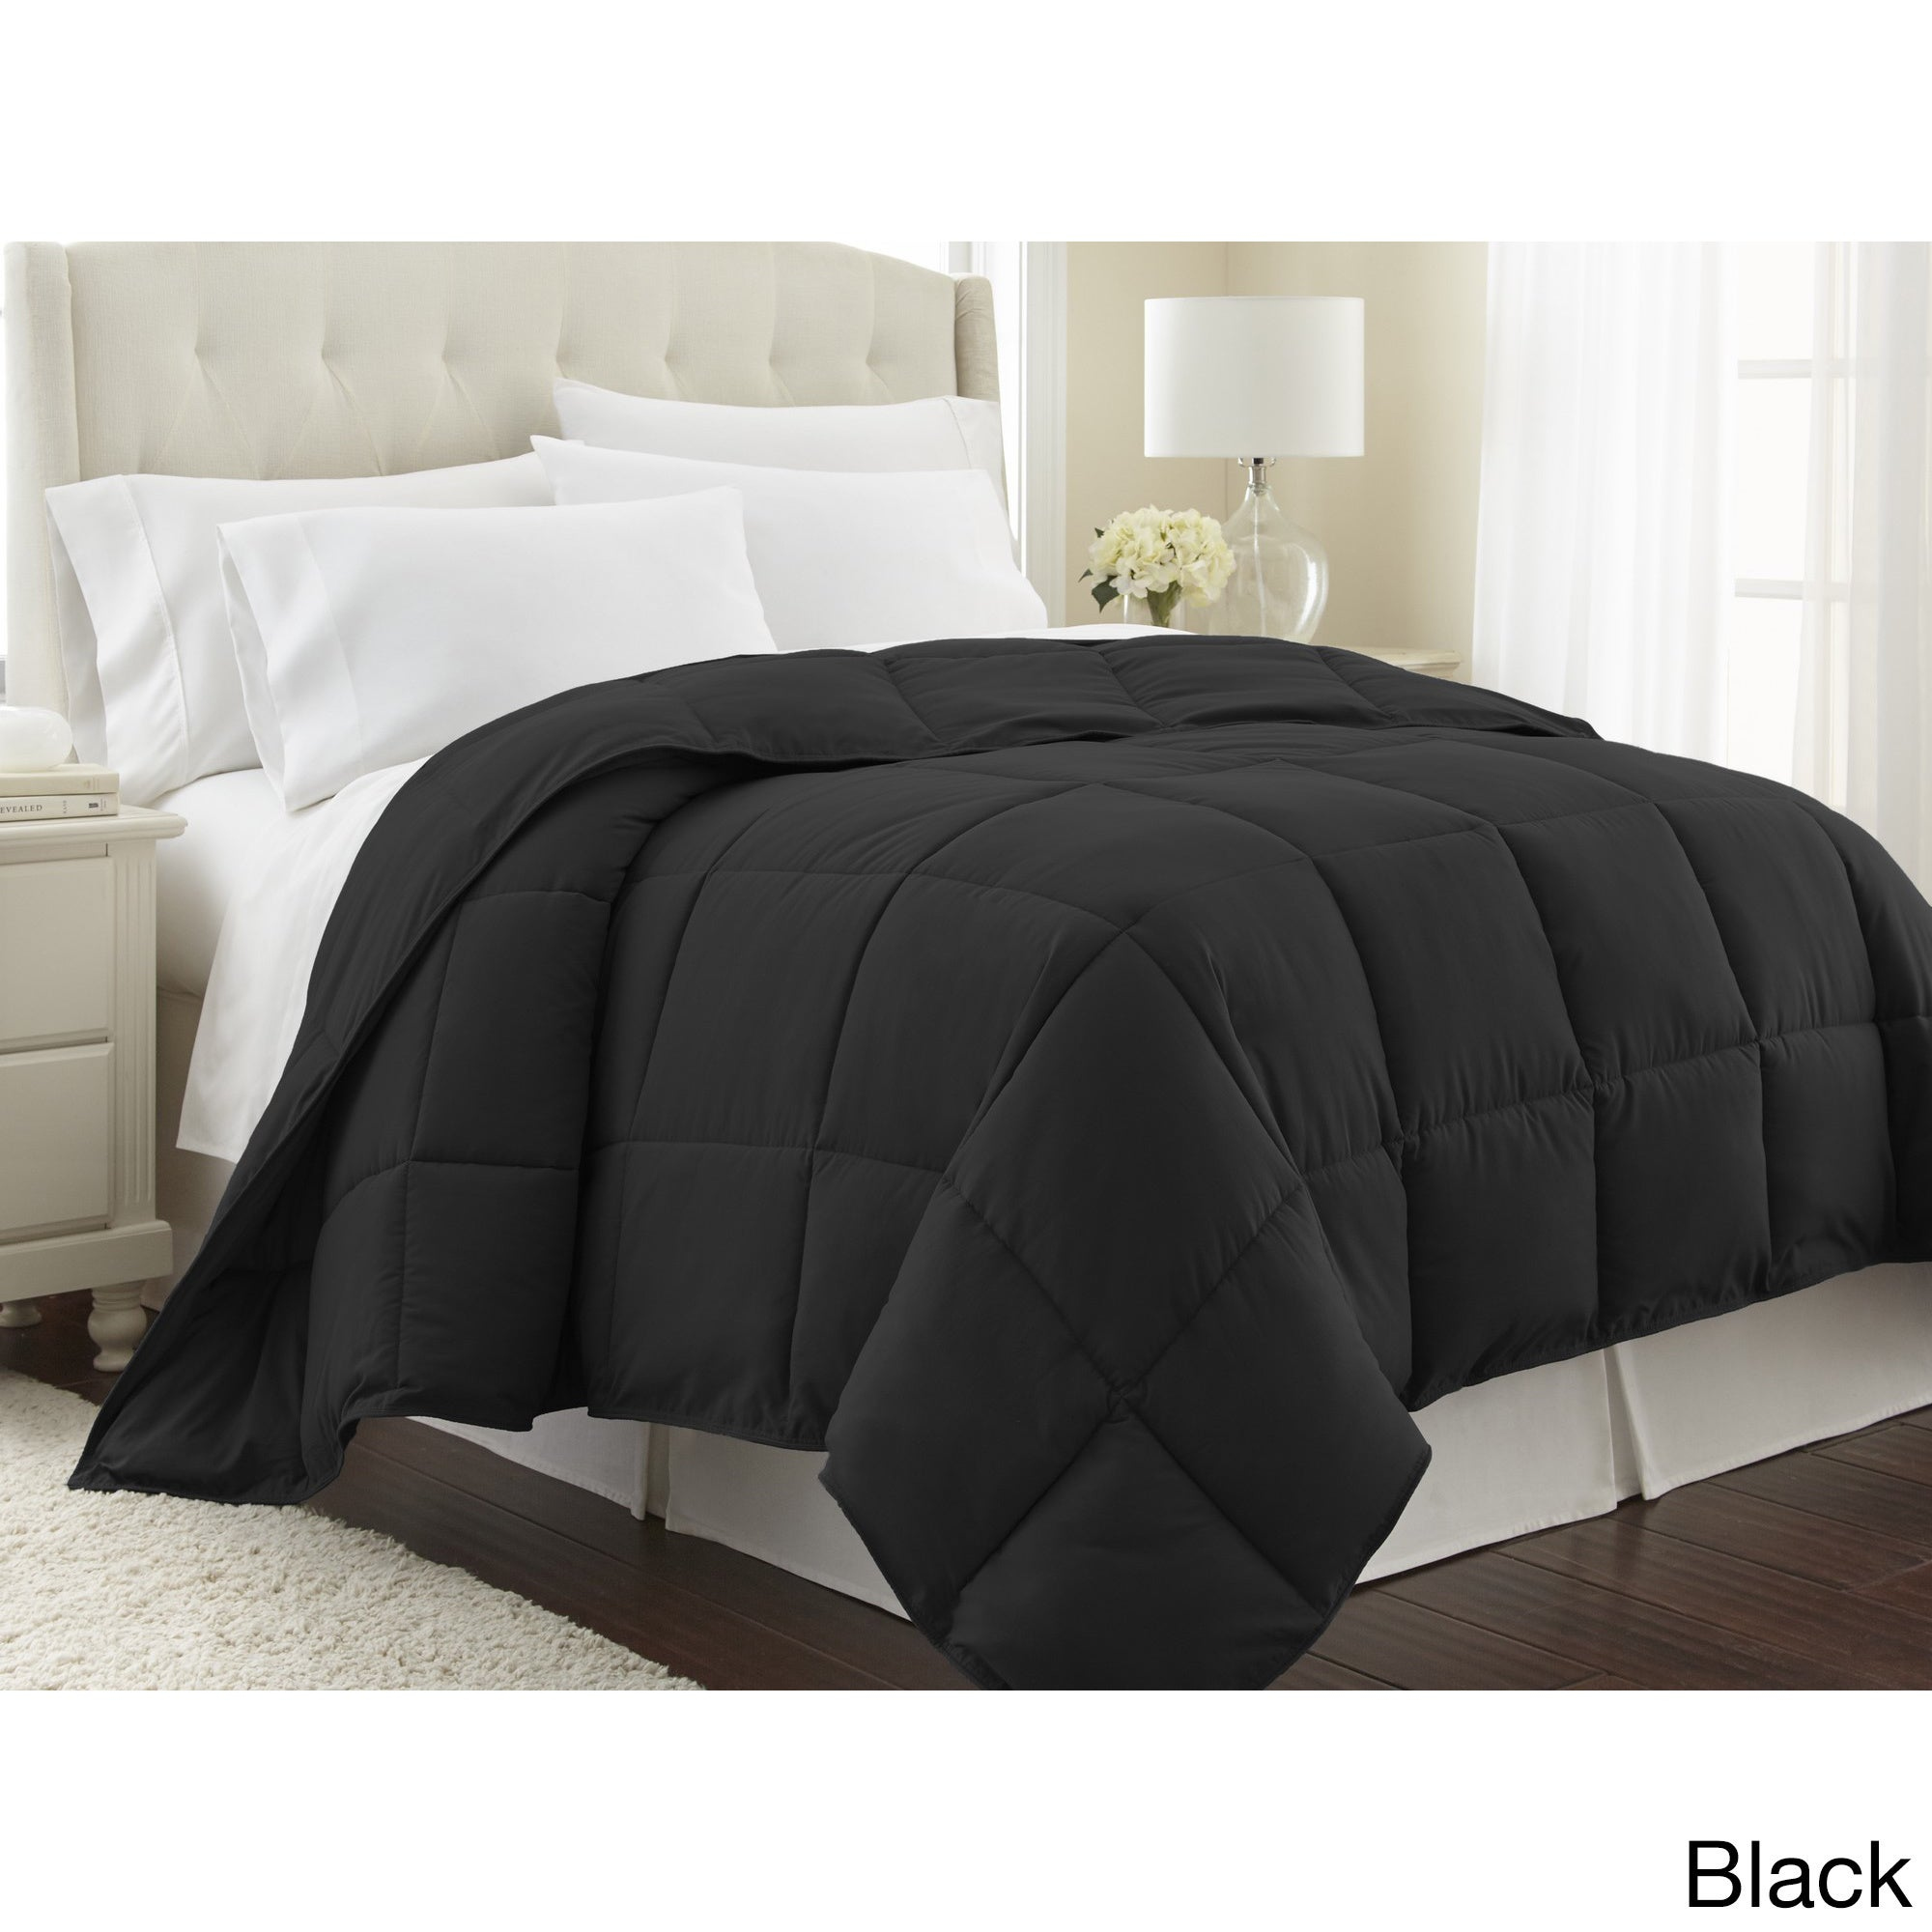 madison today shipping bedding product park bath color abigail pieced set free navy solid comforter overstock piece